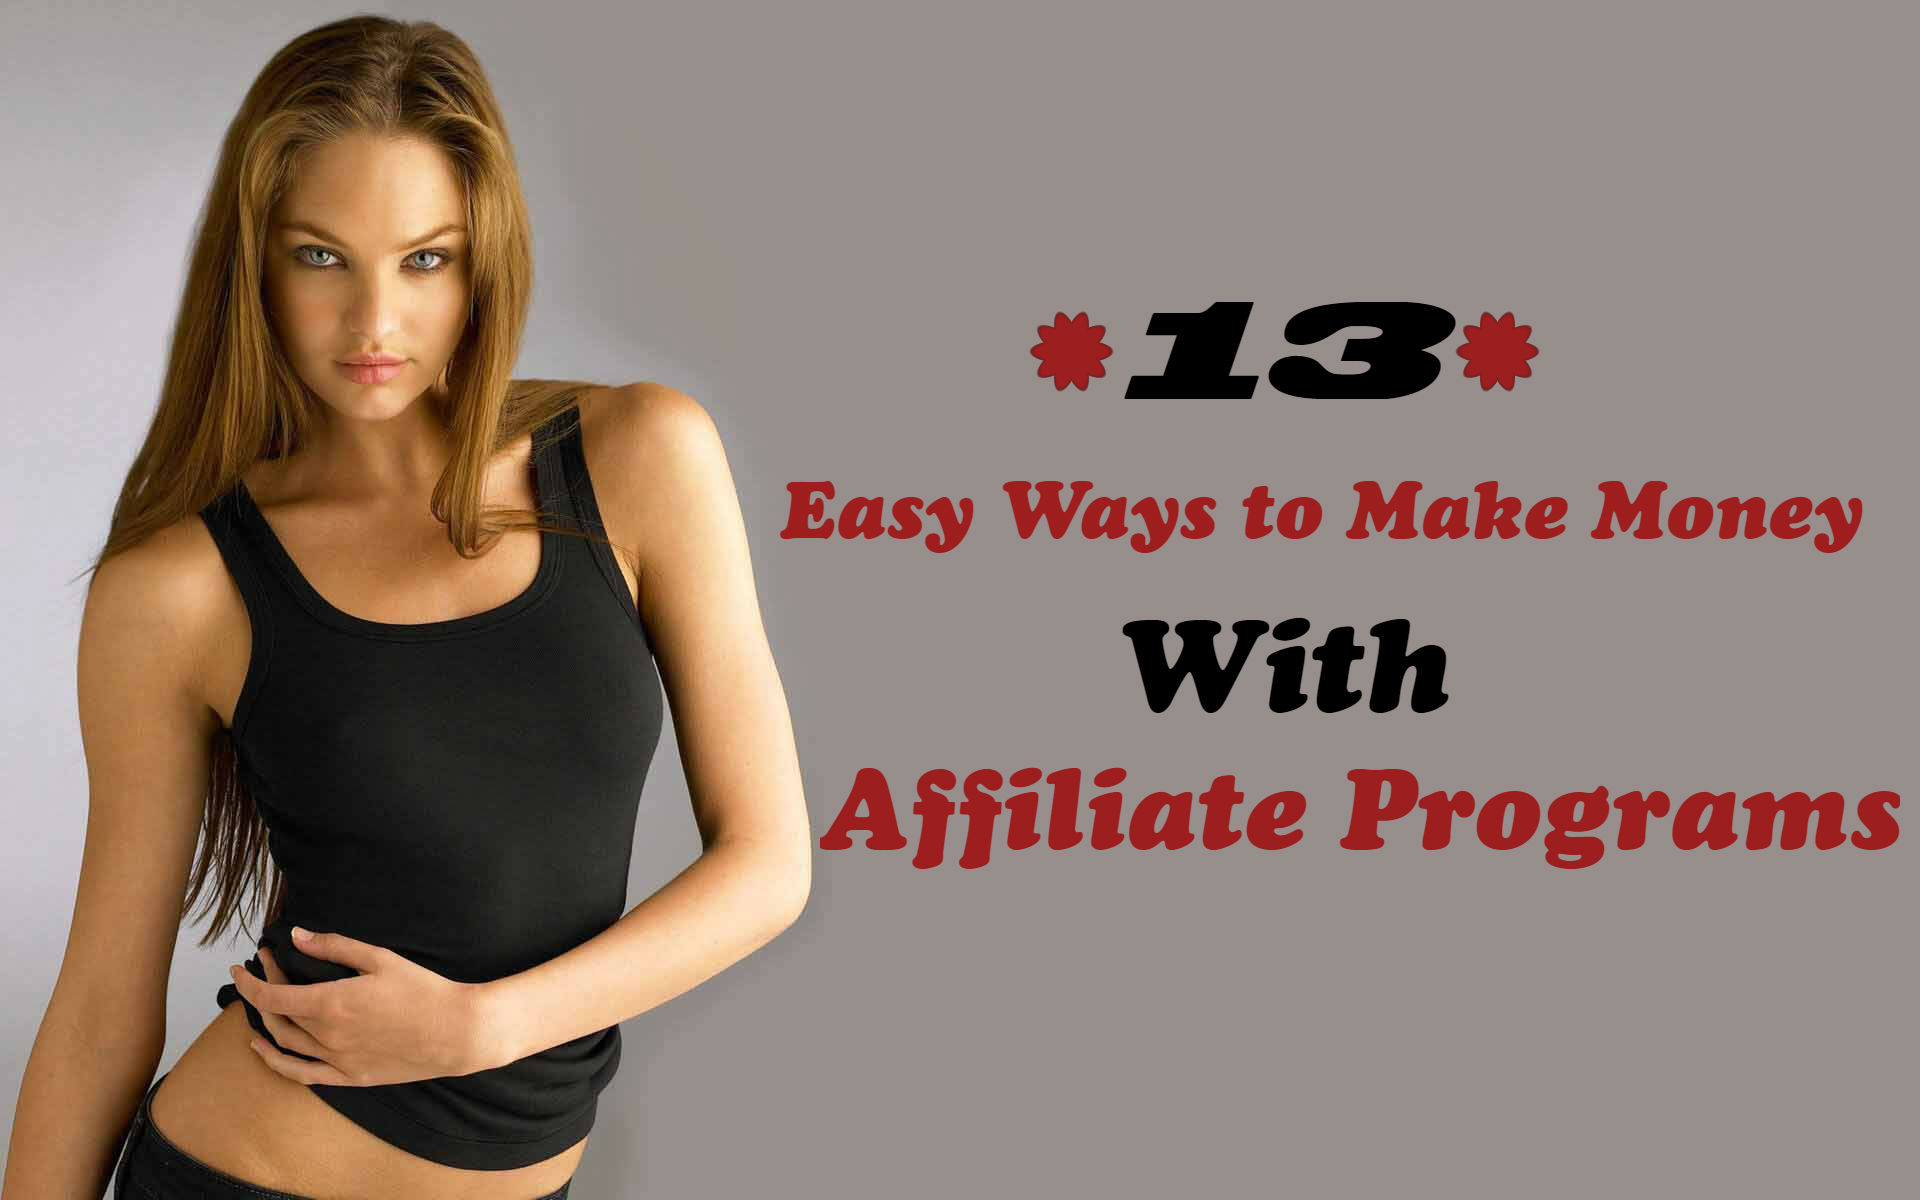 13 easy ways to make money with affiliate programs